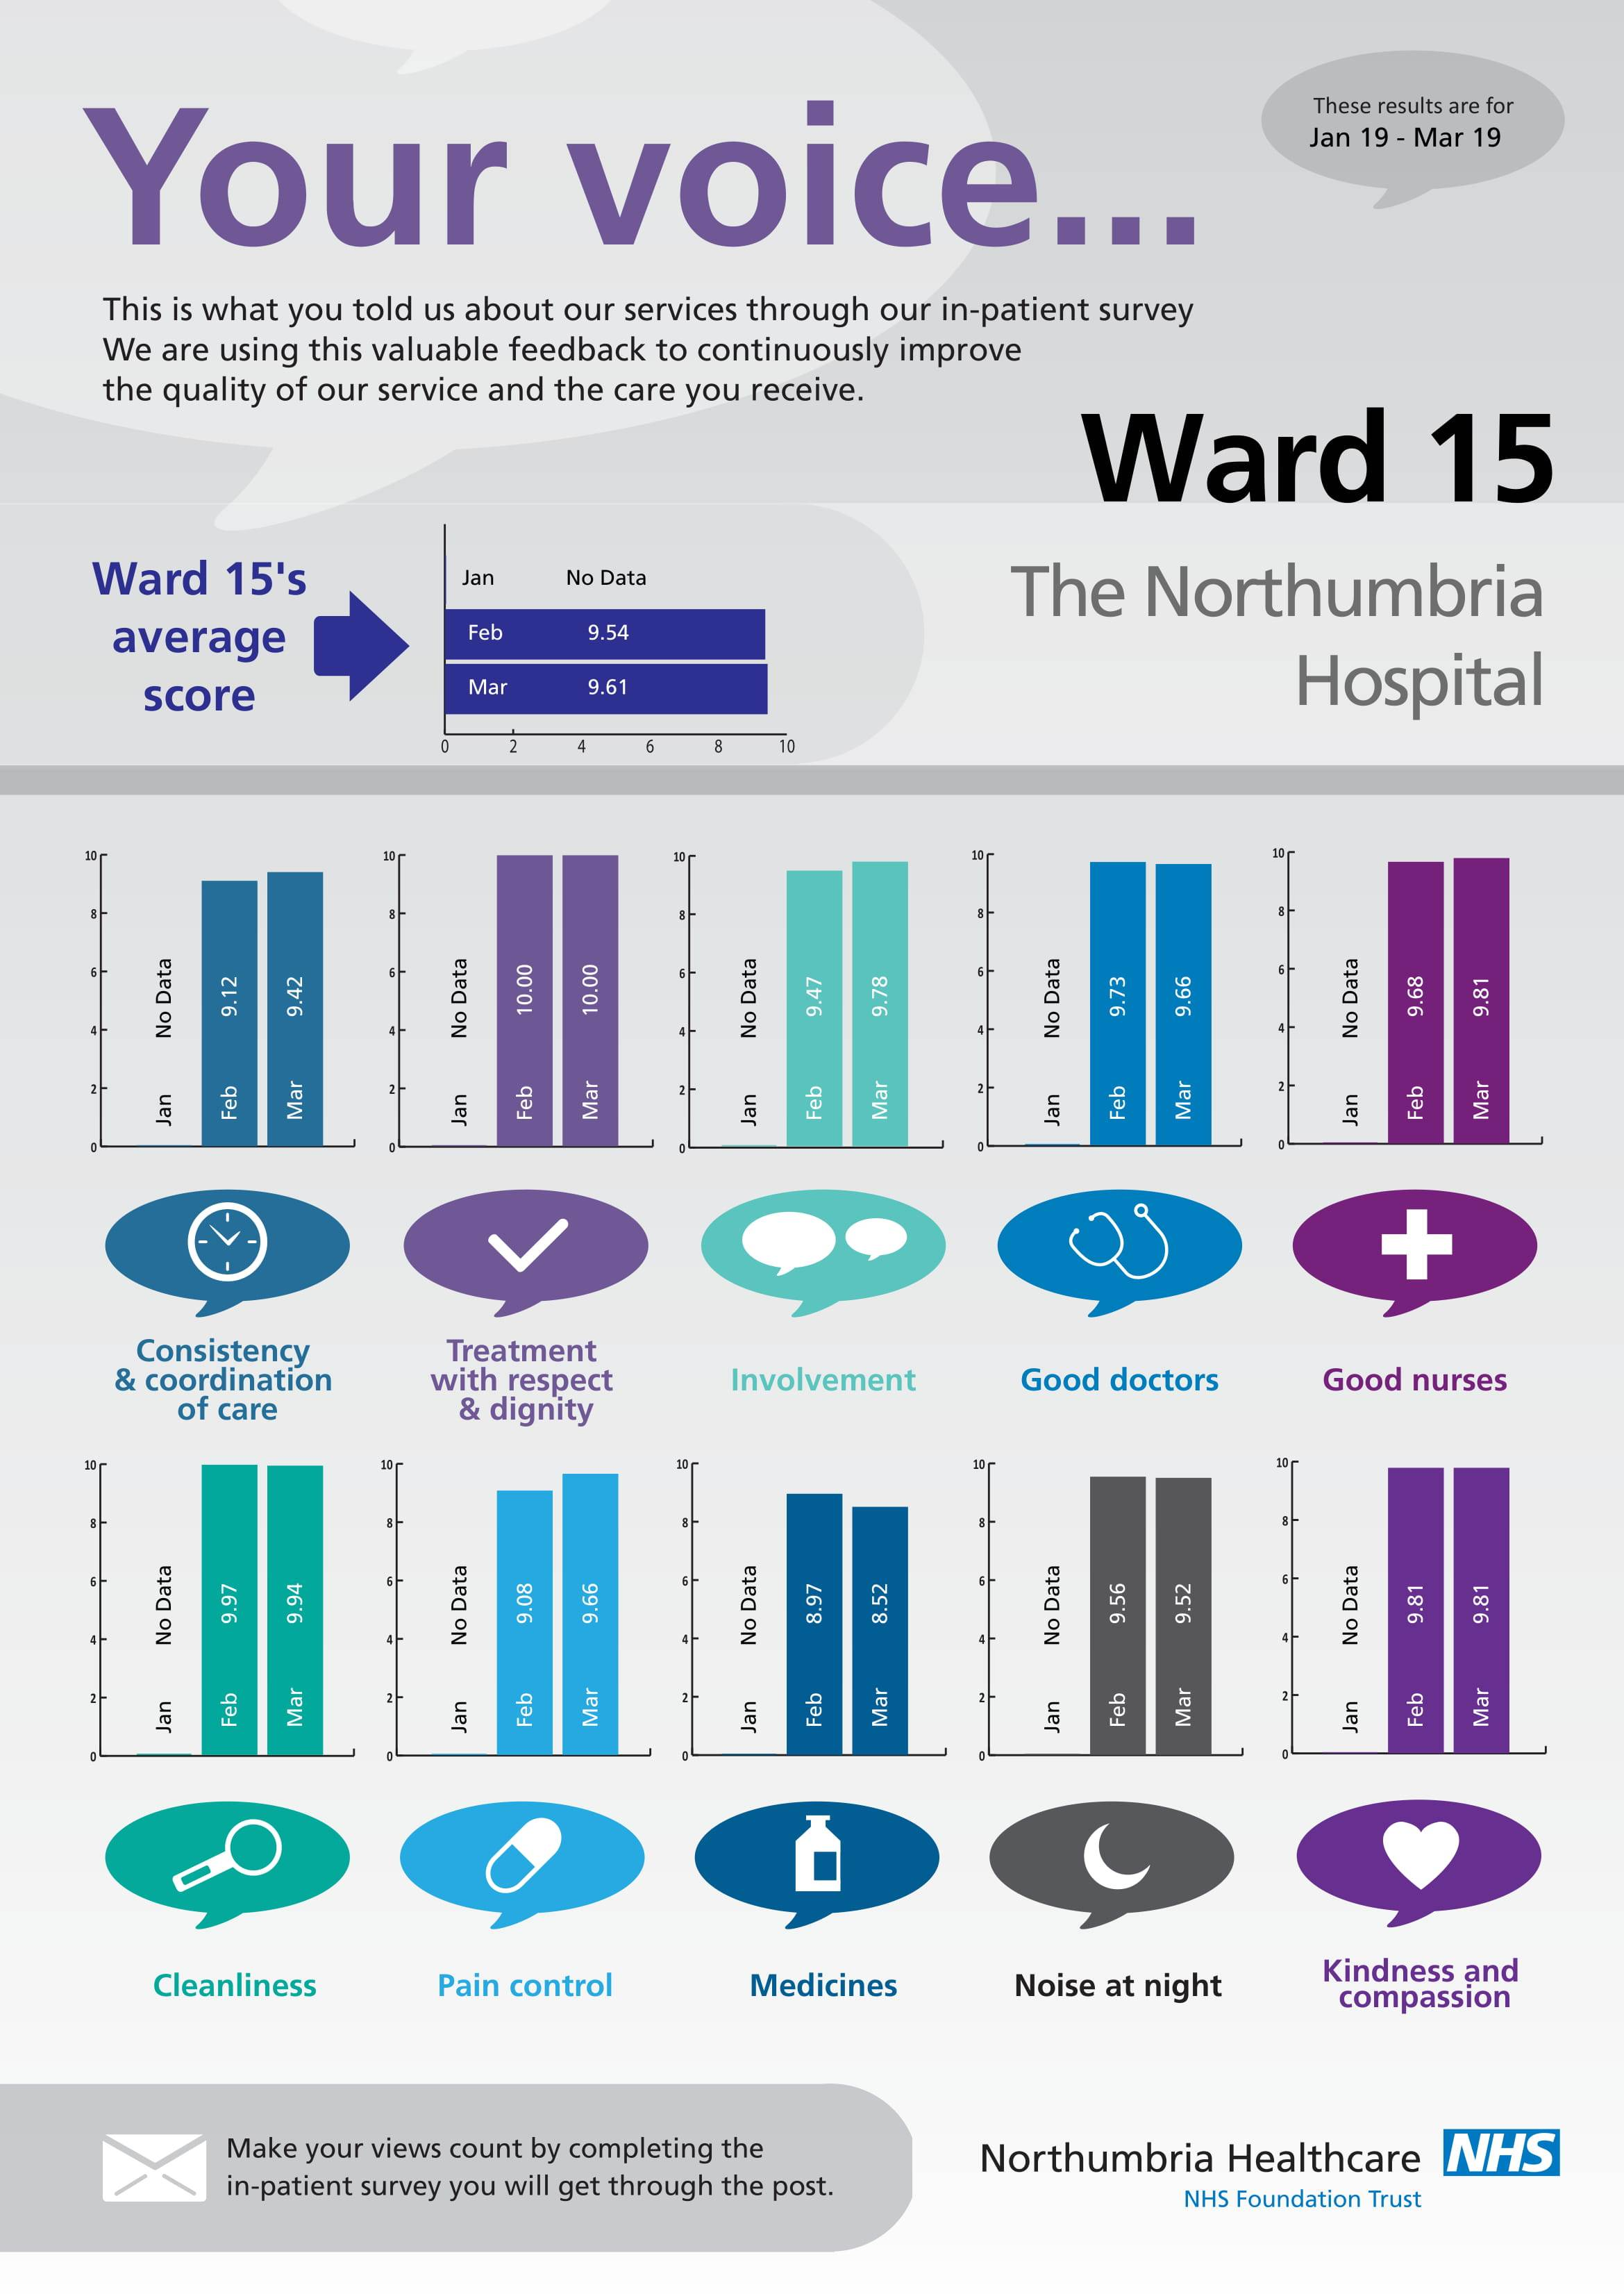 The Northumbria Hospital - Ward 15-1